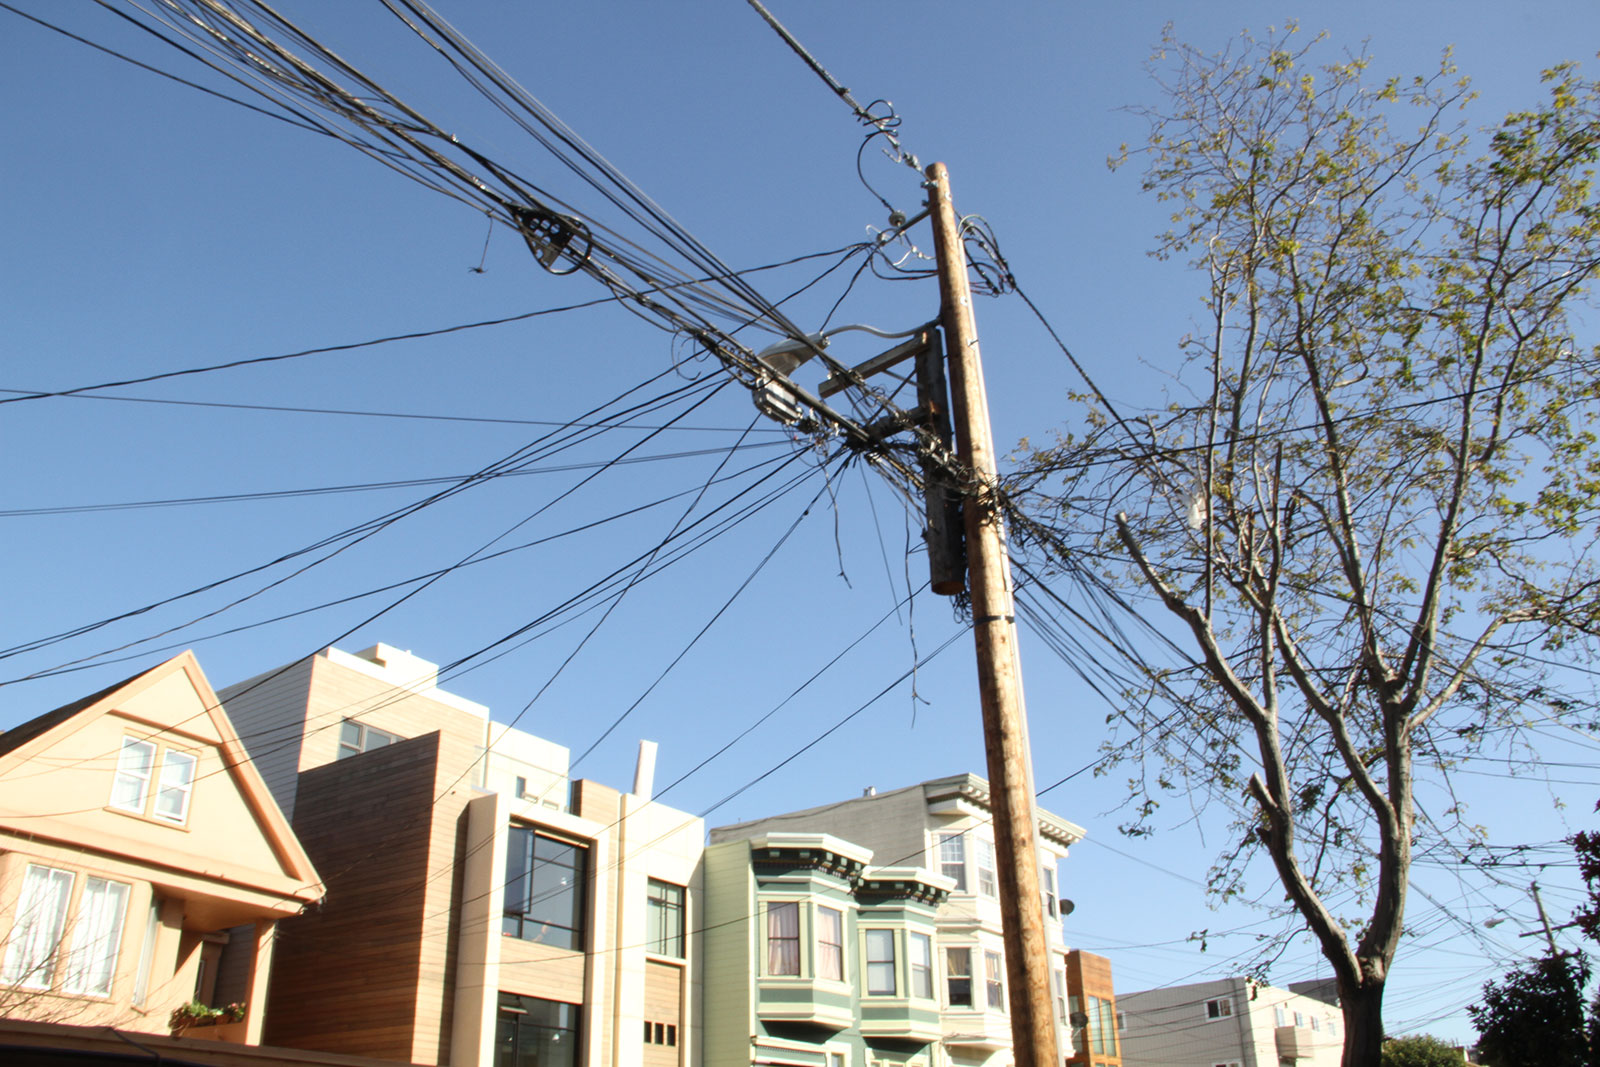 SNAP: The More Wires the Better